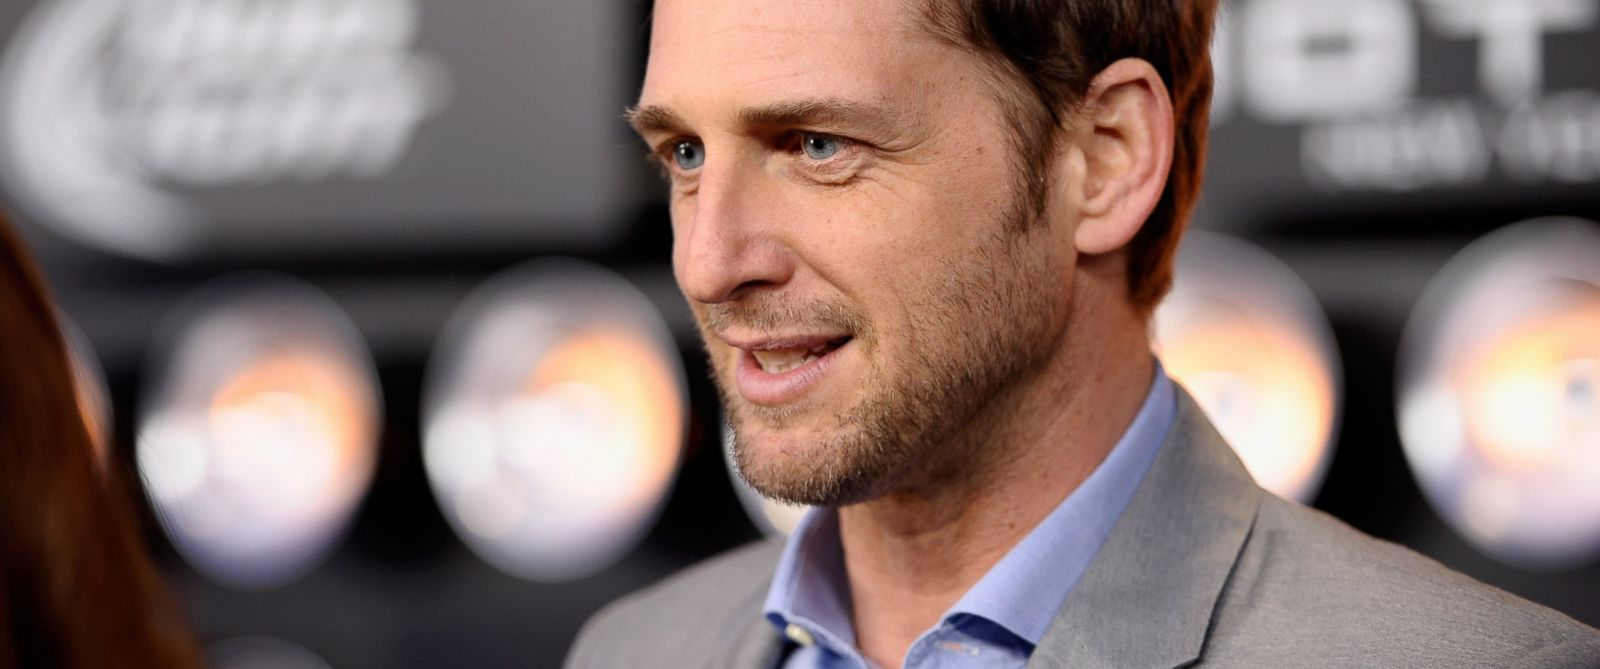 PHOTO: Actor Josh Lucas attends the Bud Light Hotel, Feb. 1, 2014 in New York.